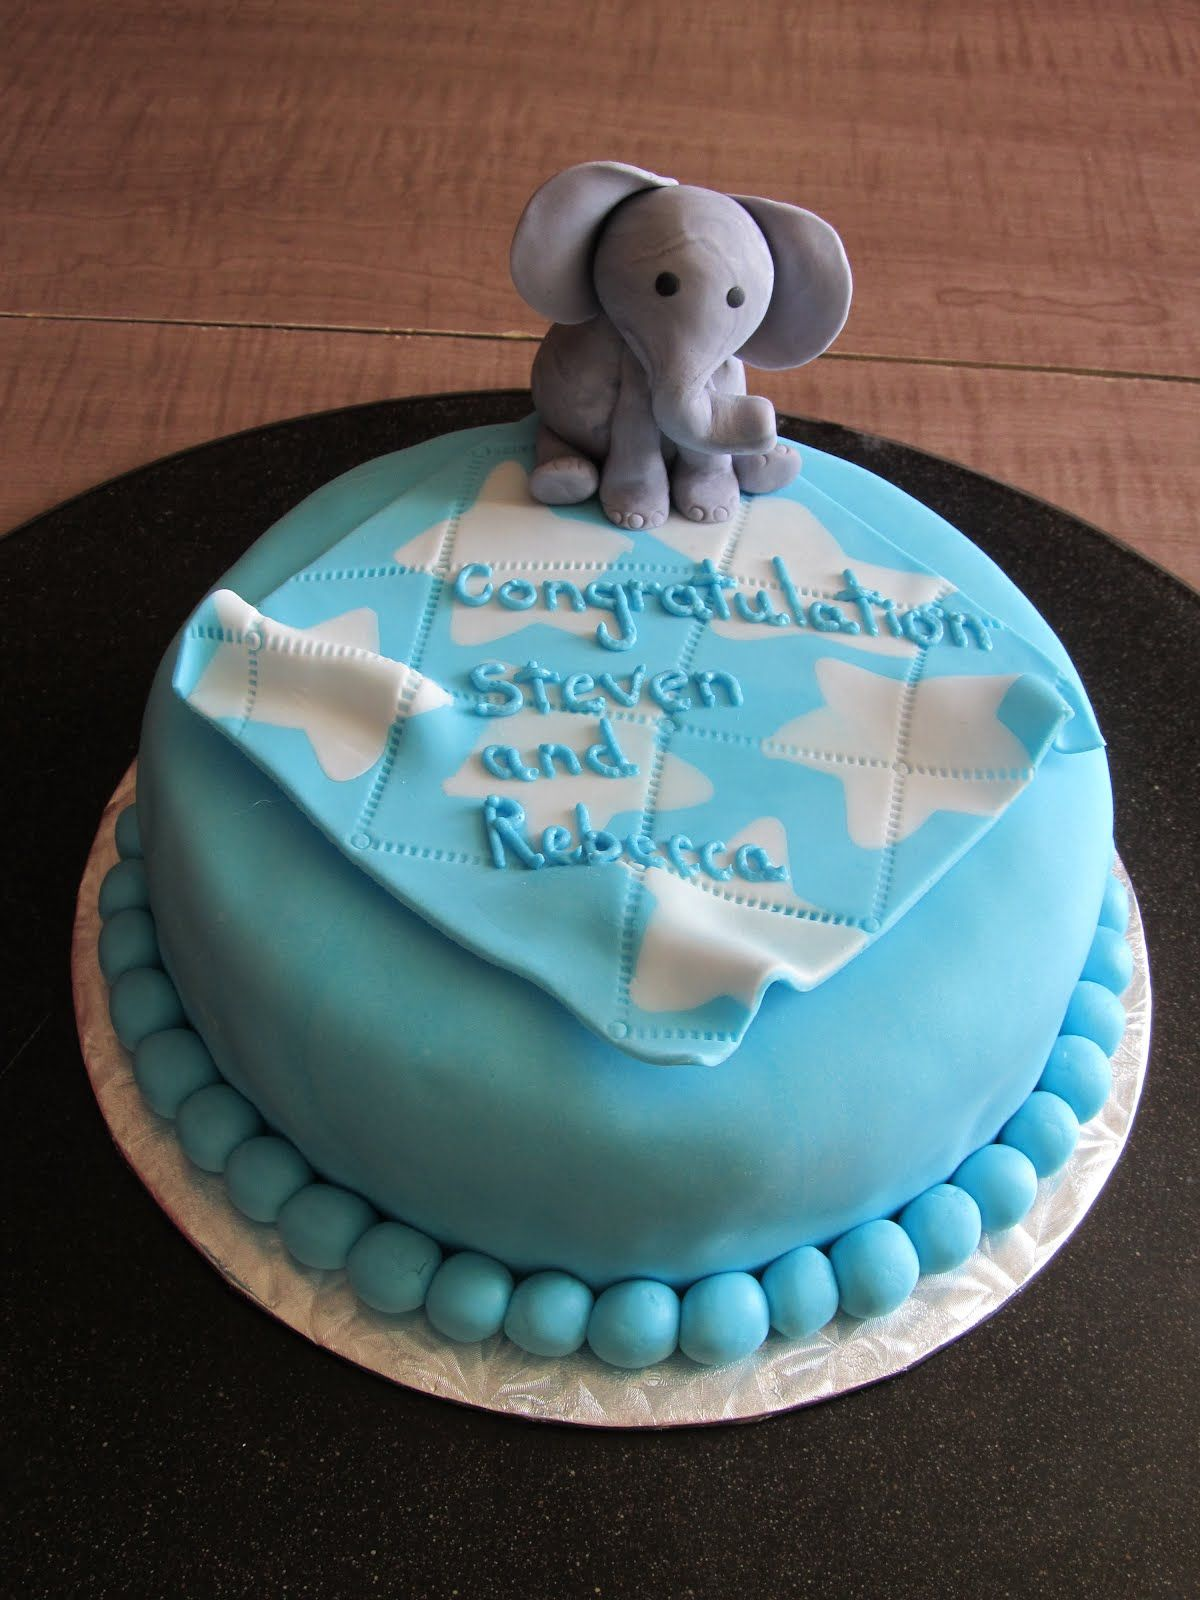 Cake Designs by Steph Elephant Babyshower cake & cupcakes